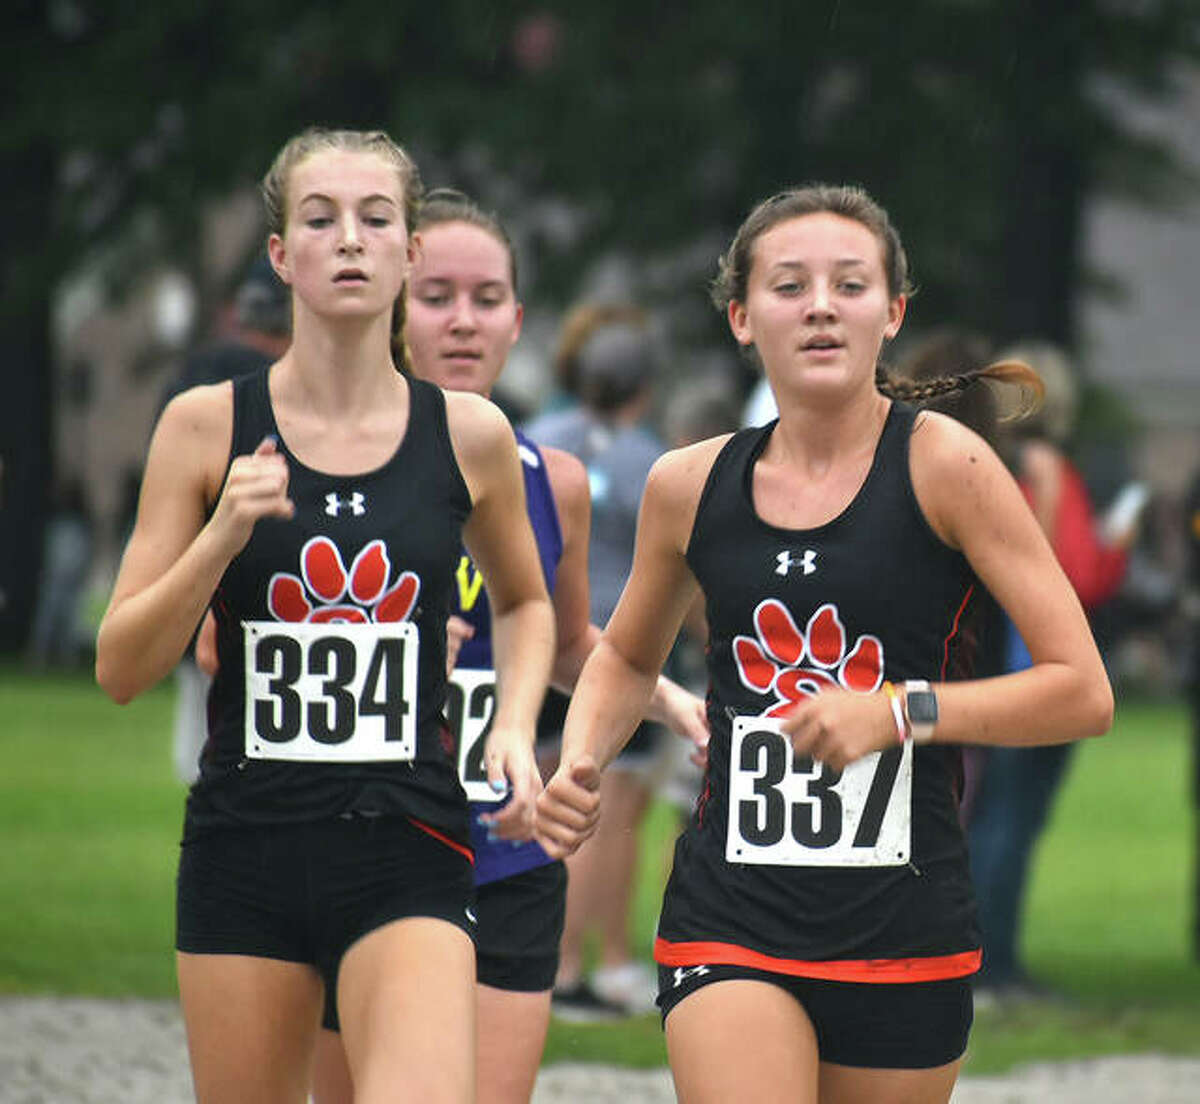 Edwardsville's Maya Lueking, left, and Emily Nuttall run together down a rack path inside Maxwell Park during the Granite City Invitational on Saturday in Granite City.